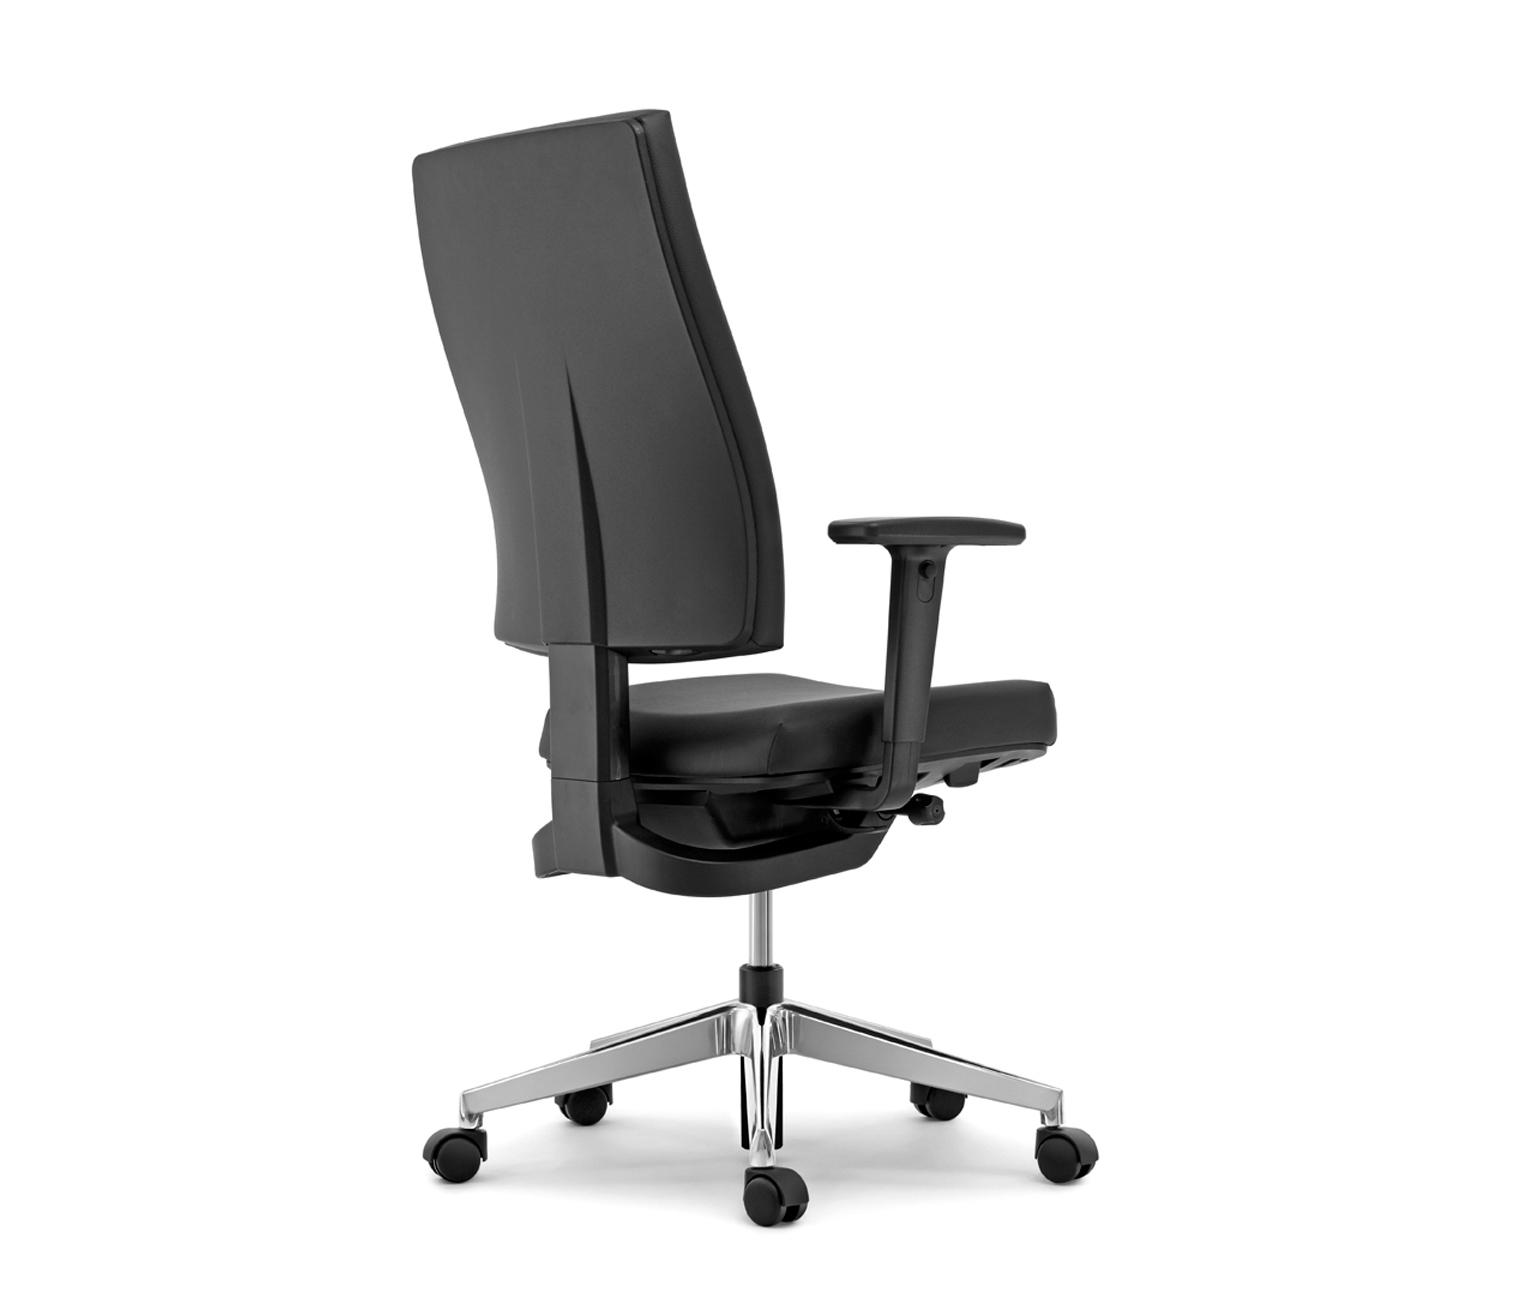 MIA HIGH BACK CHAIR Task chairs from Nurus